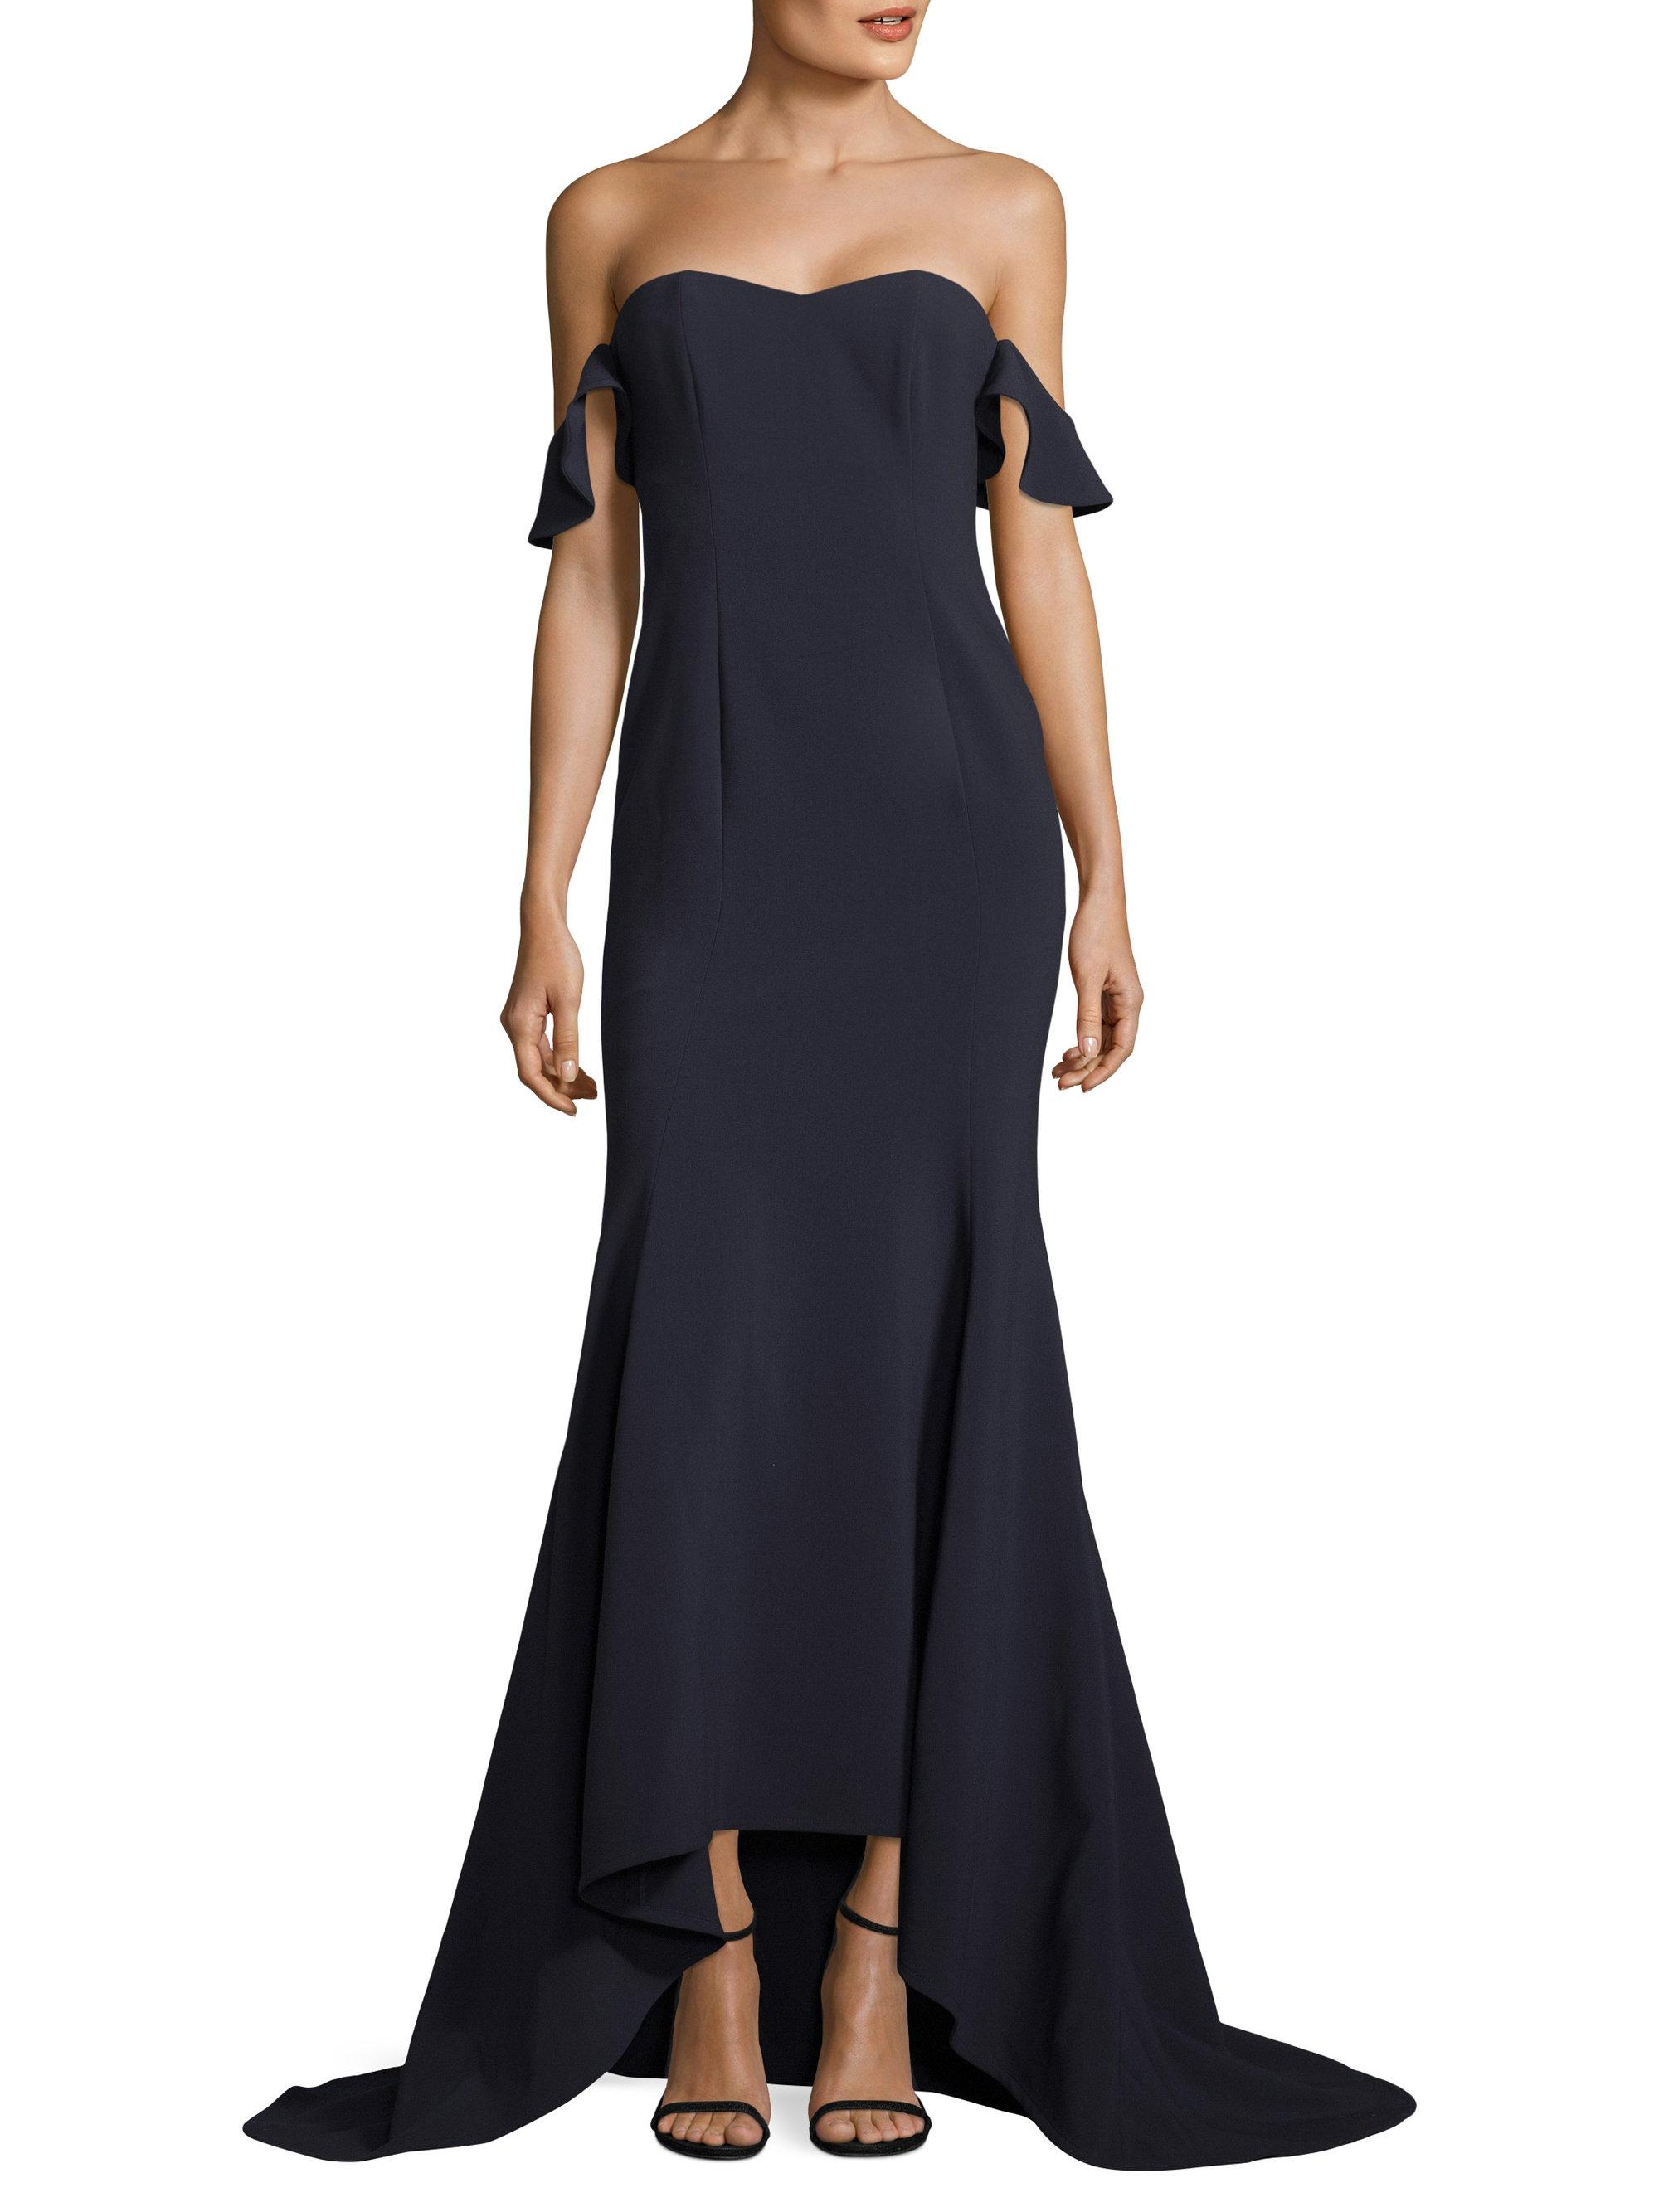 62f27a5a7236 Lyst - Likely Sunset Gown in Black